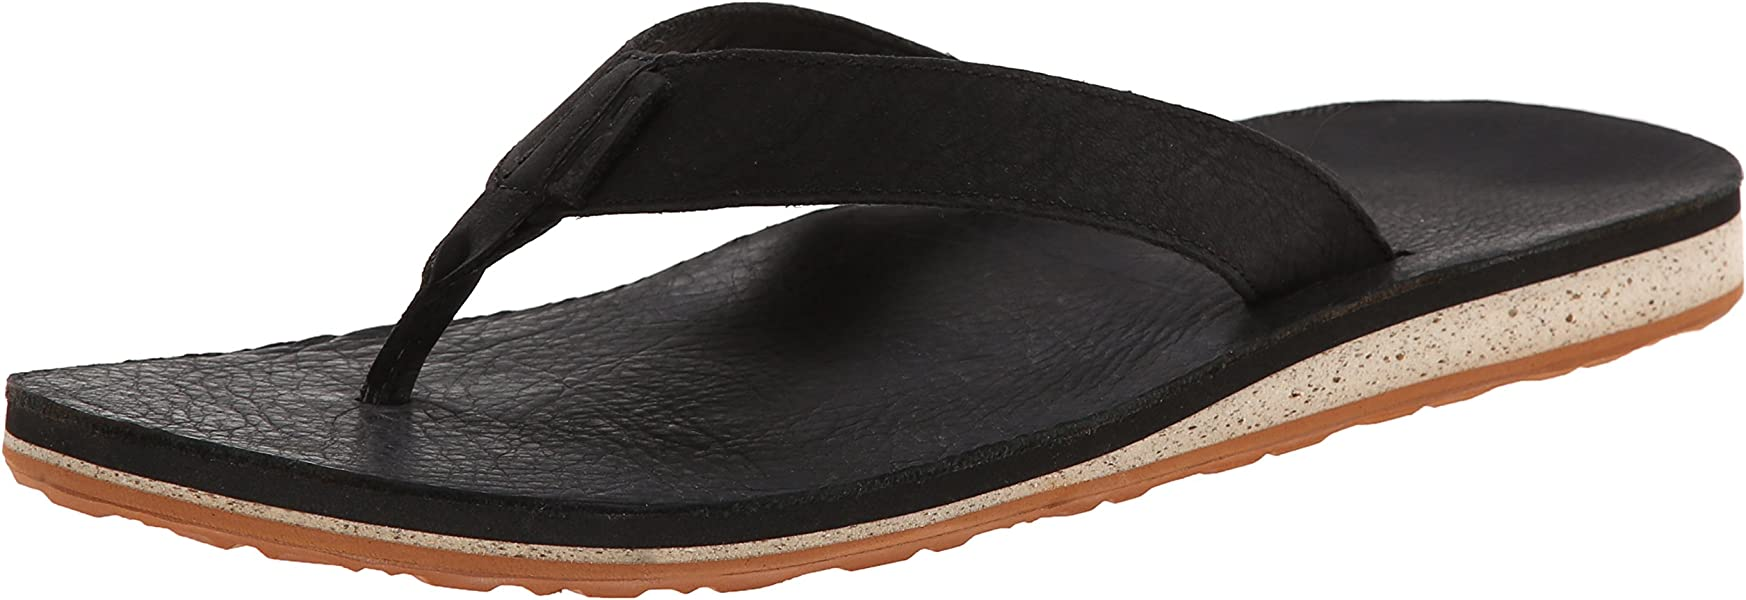 e32d9ee5f44da5 Teva Men s Classic Premium Leather Flip-Flop